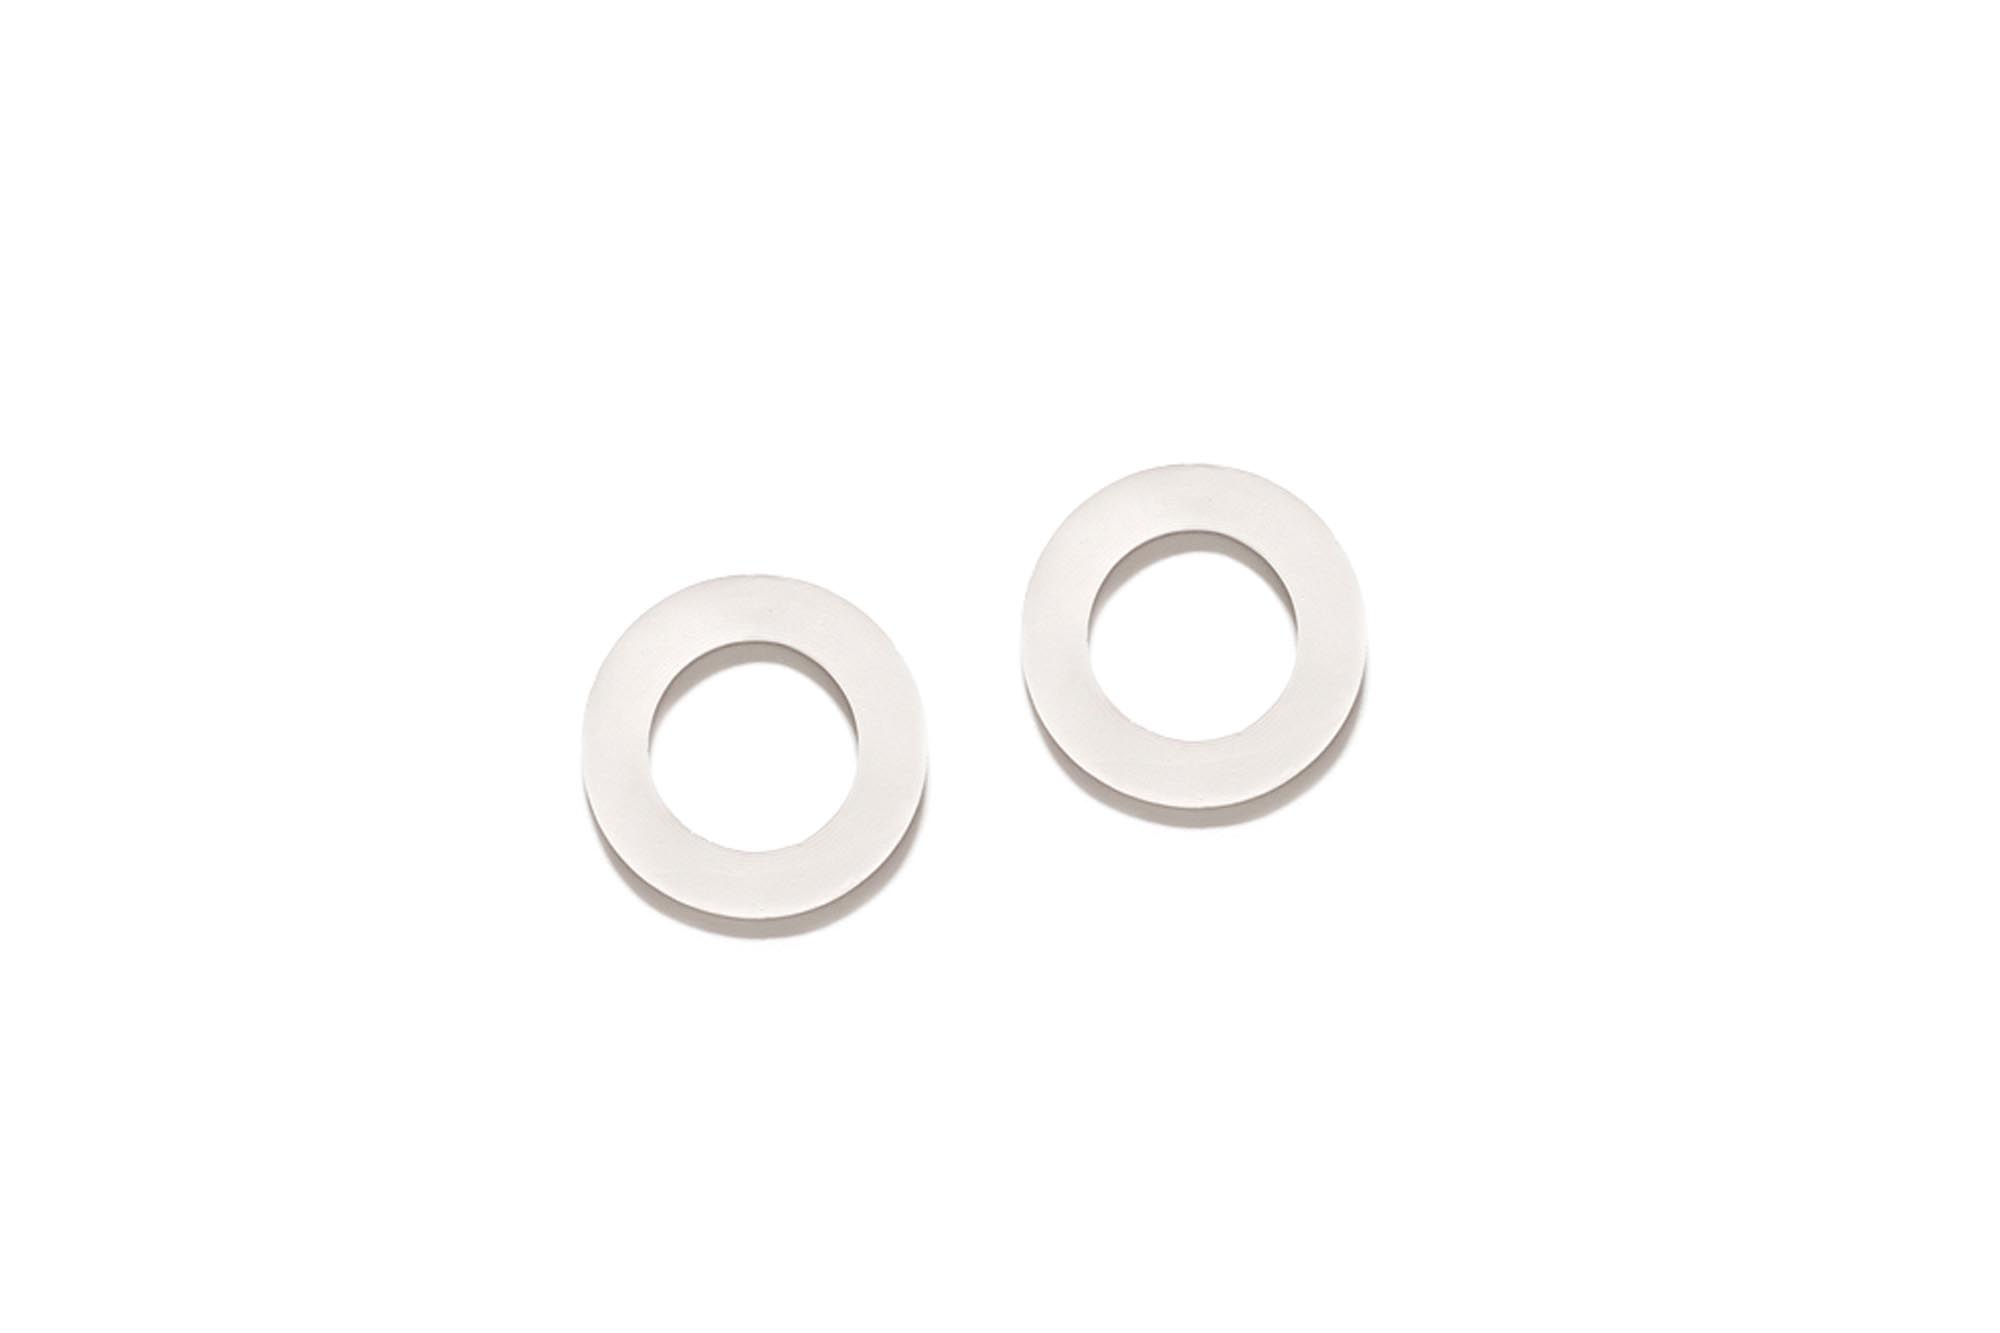 Photo of SodaStream adapter seal / washer.